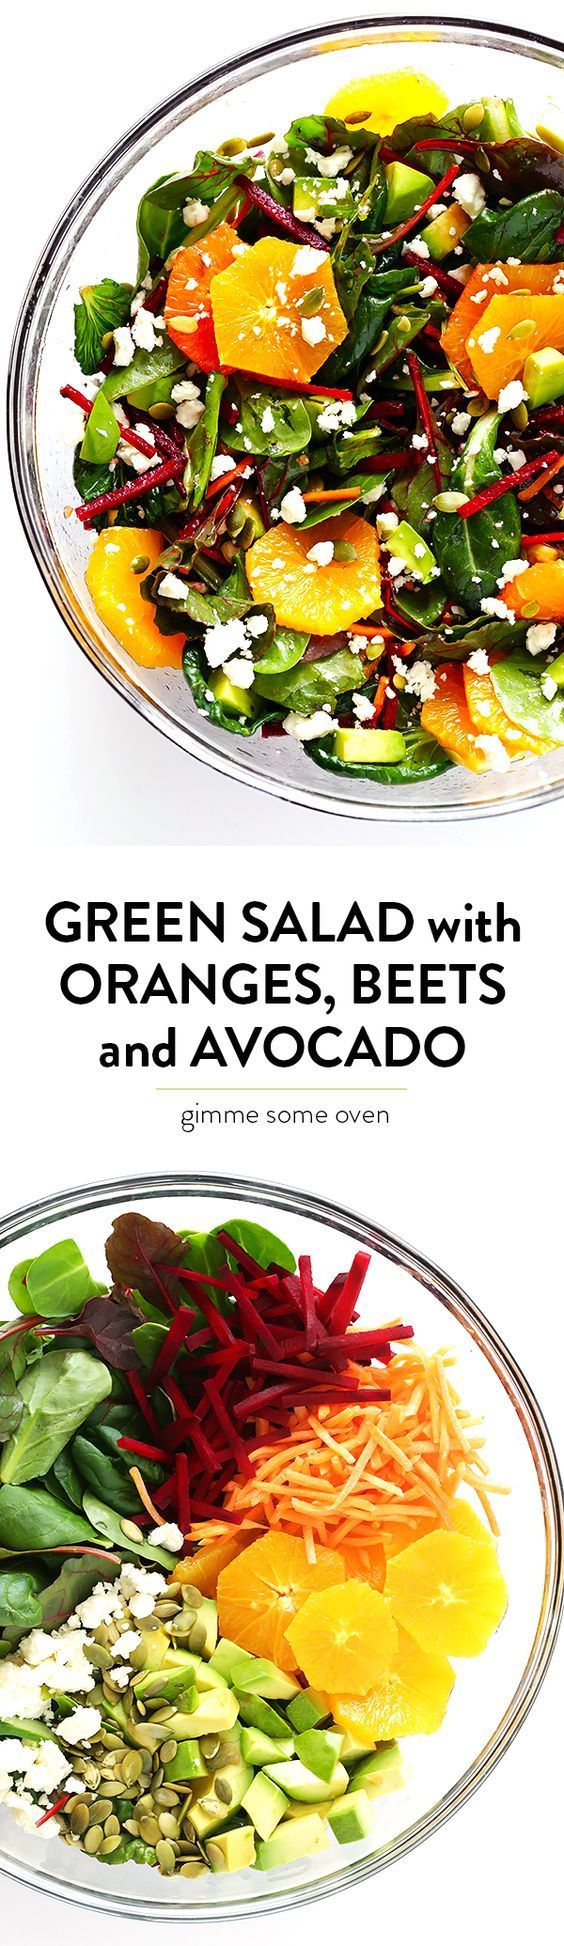 Green Salad with Oranges, Beets and Avocado -- easy to make, tossed with a balsamic vinaigrette, and so fresh and delicious! | healthy recipe ideas @xhealthyrecipex |